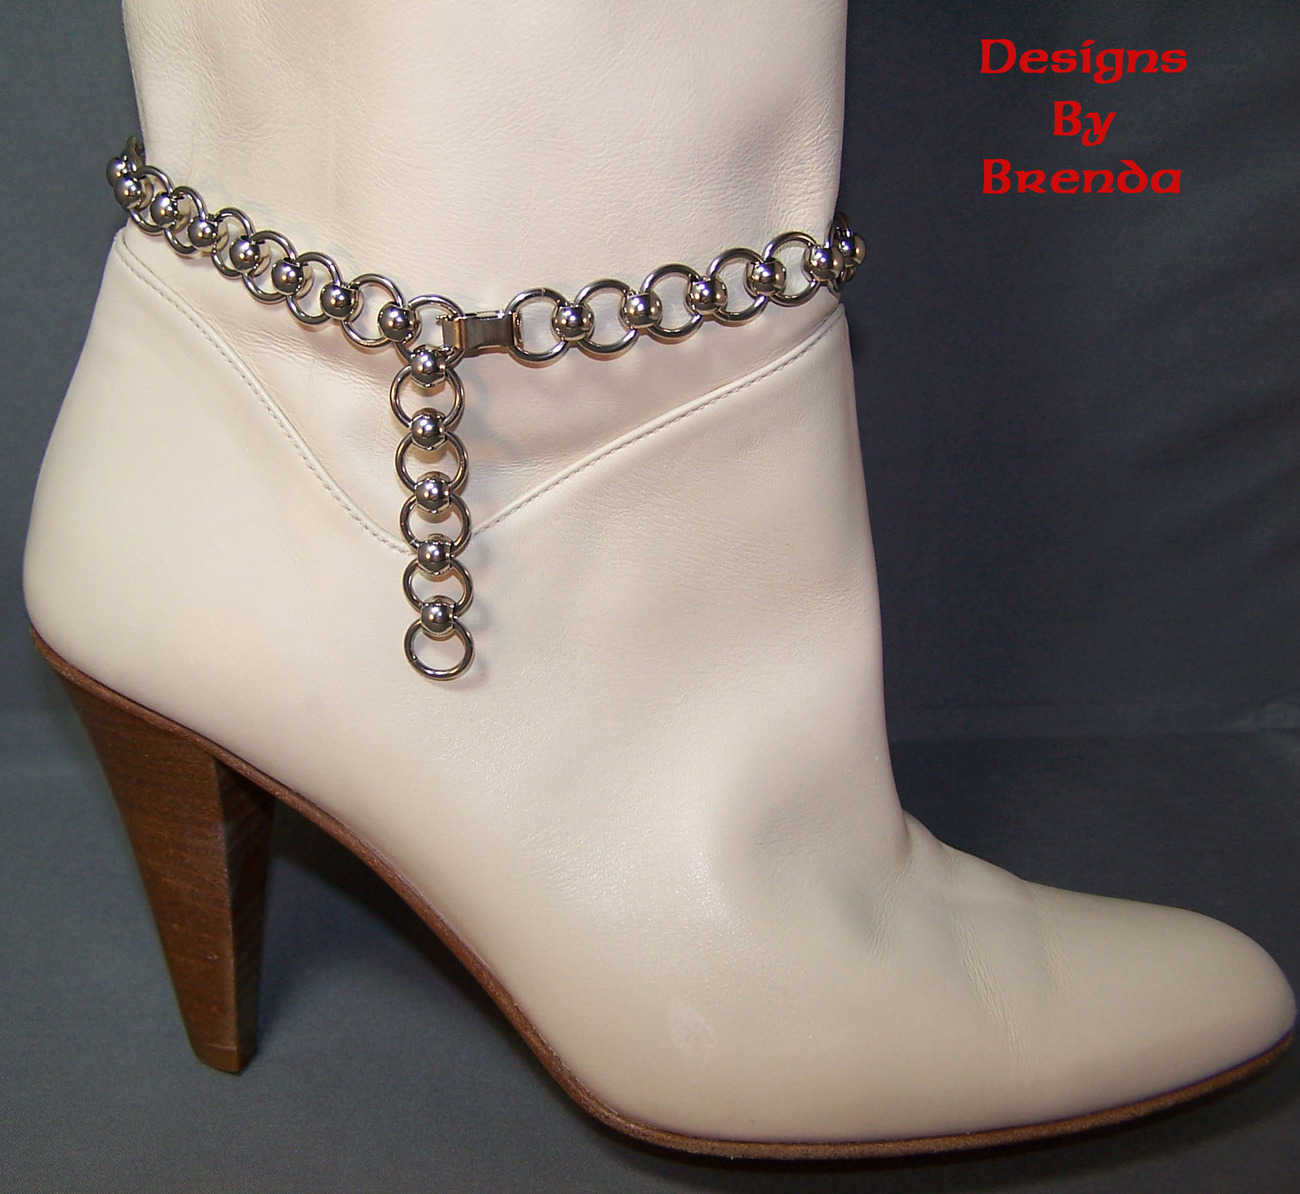 Stainless steel boot chain